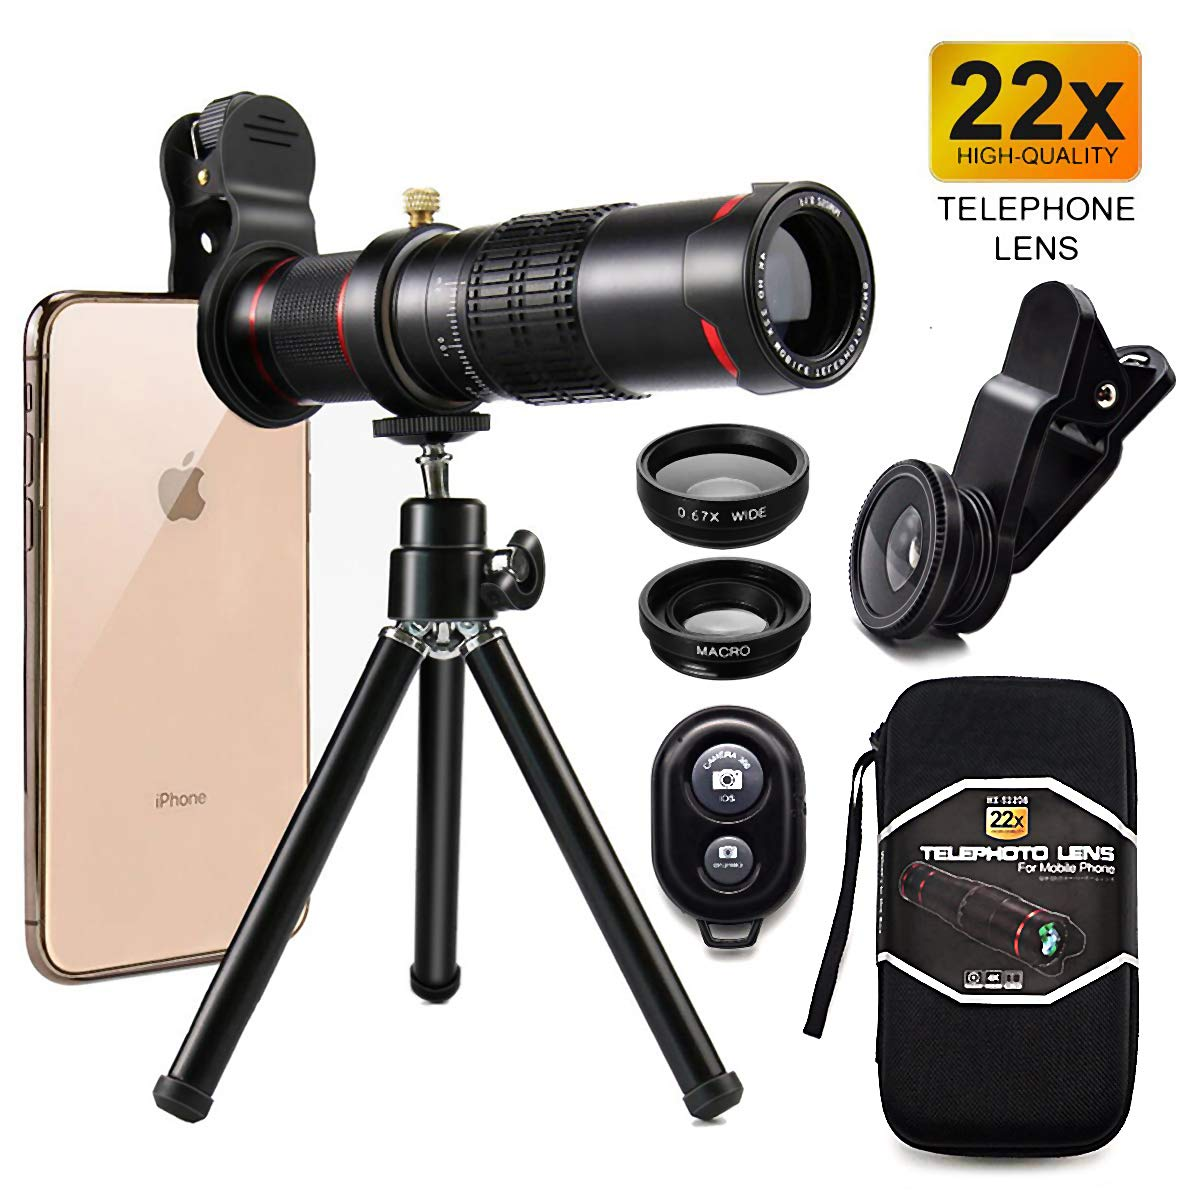 Cell Phone Camera Lens,Phone Photography Kit-Flexible Phone Tripod +Remote Shutter +4 in 1 Lens Kit-High Power 22X Monocular Telephoto Lens, Fisheye, Macro & Wide Angle Lens for Smartphone (Black) by Bamoer